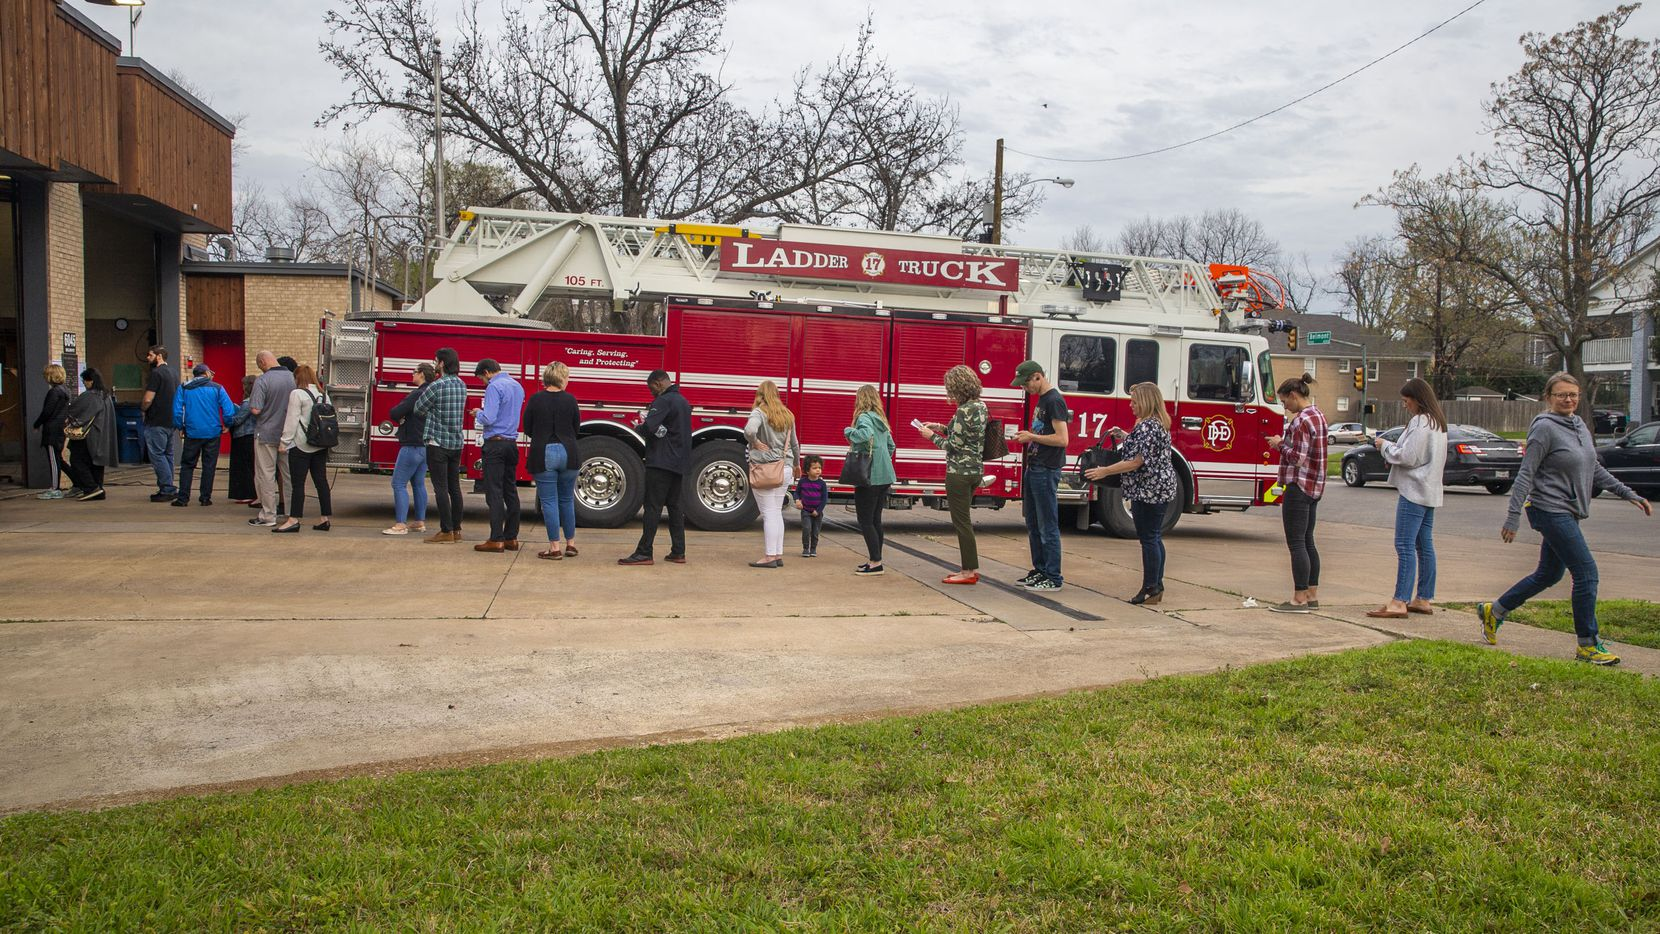 A long line of voters wait to cast their ballots in the primary election after 5 p.m. at Dallas Fire Station No. 17 in the Lakewood Heights neighborhood of Dallas on Tuesday, March 3, 2020.